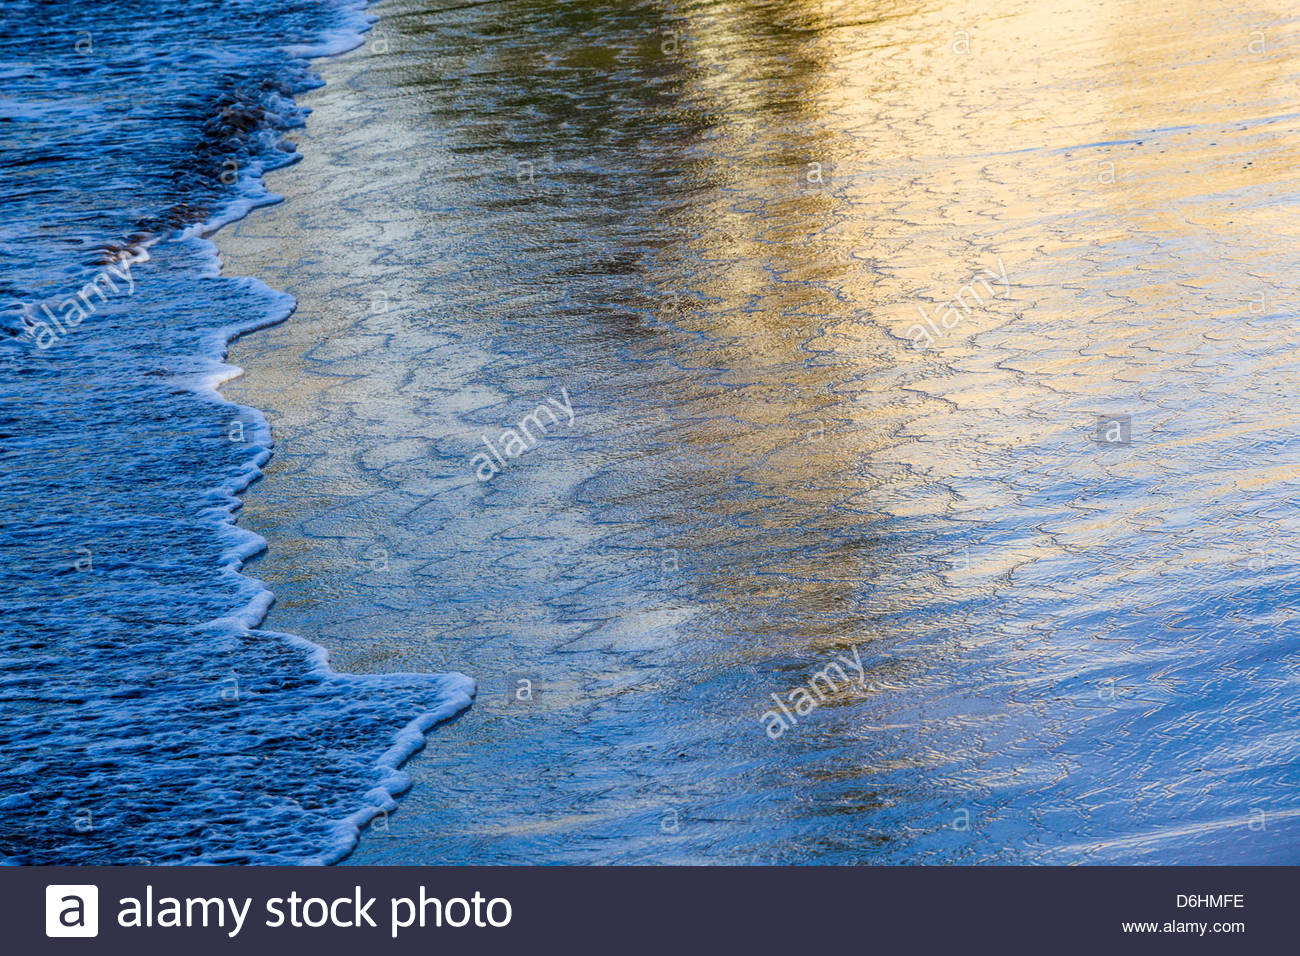 Morning reflections on ocean surface at Sugar Beach in Kihei on the island of Maui in the State of Hawaii USA - Stock Image